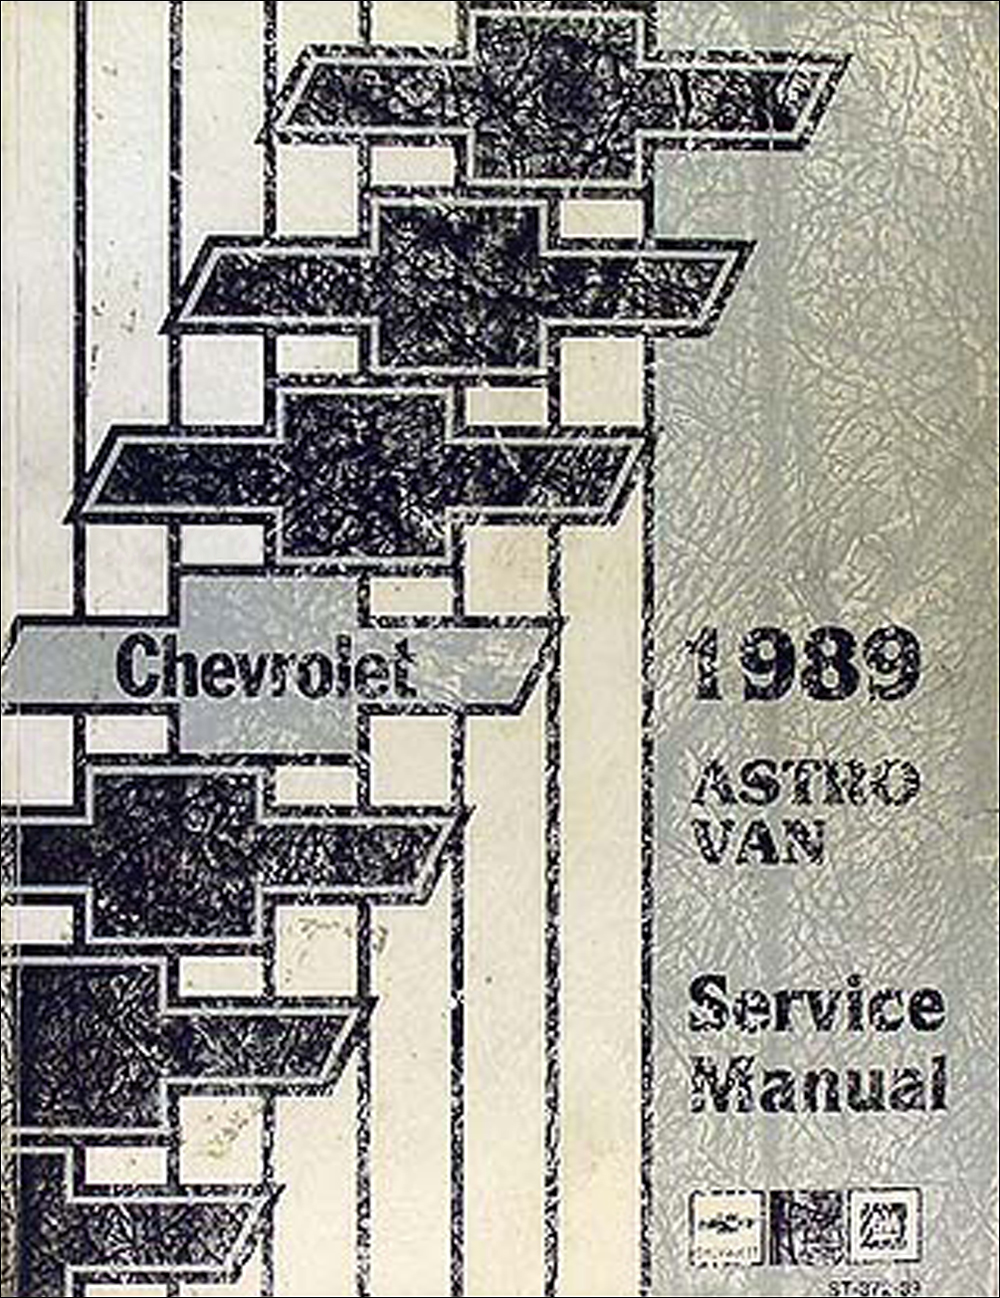 1989 Chevrolet Astro Van Shop Manual Original